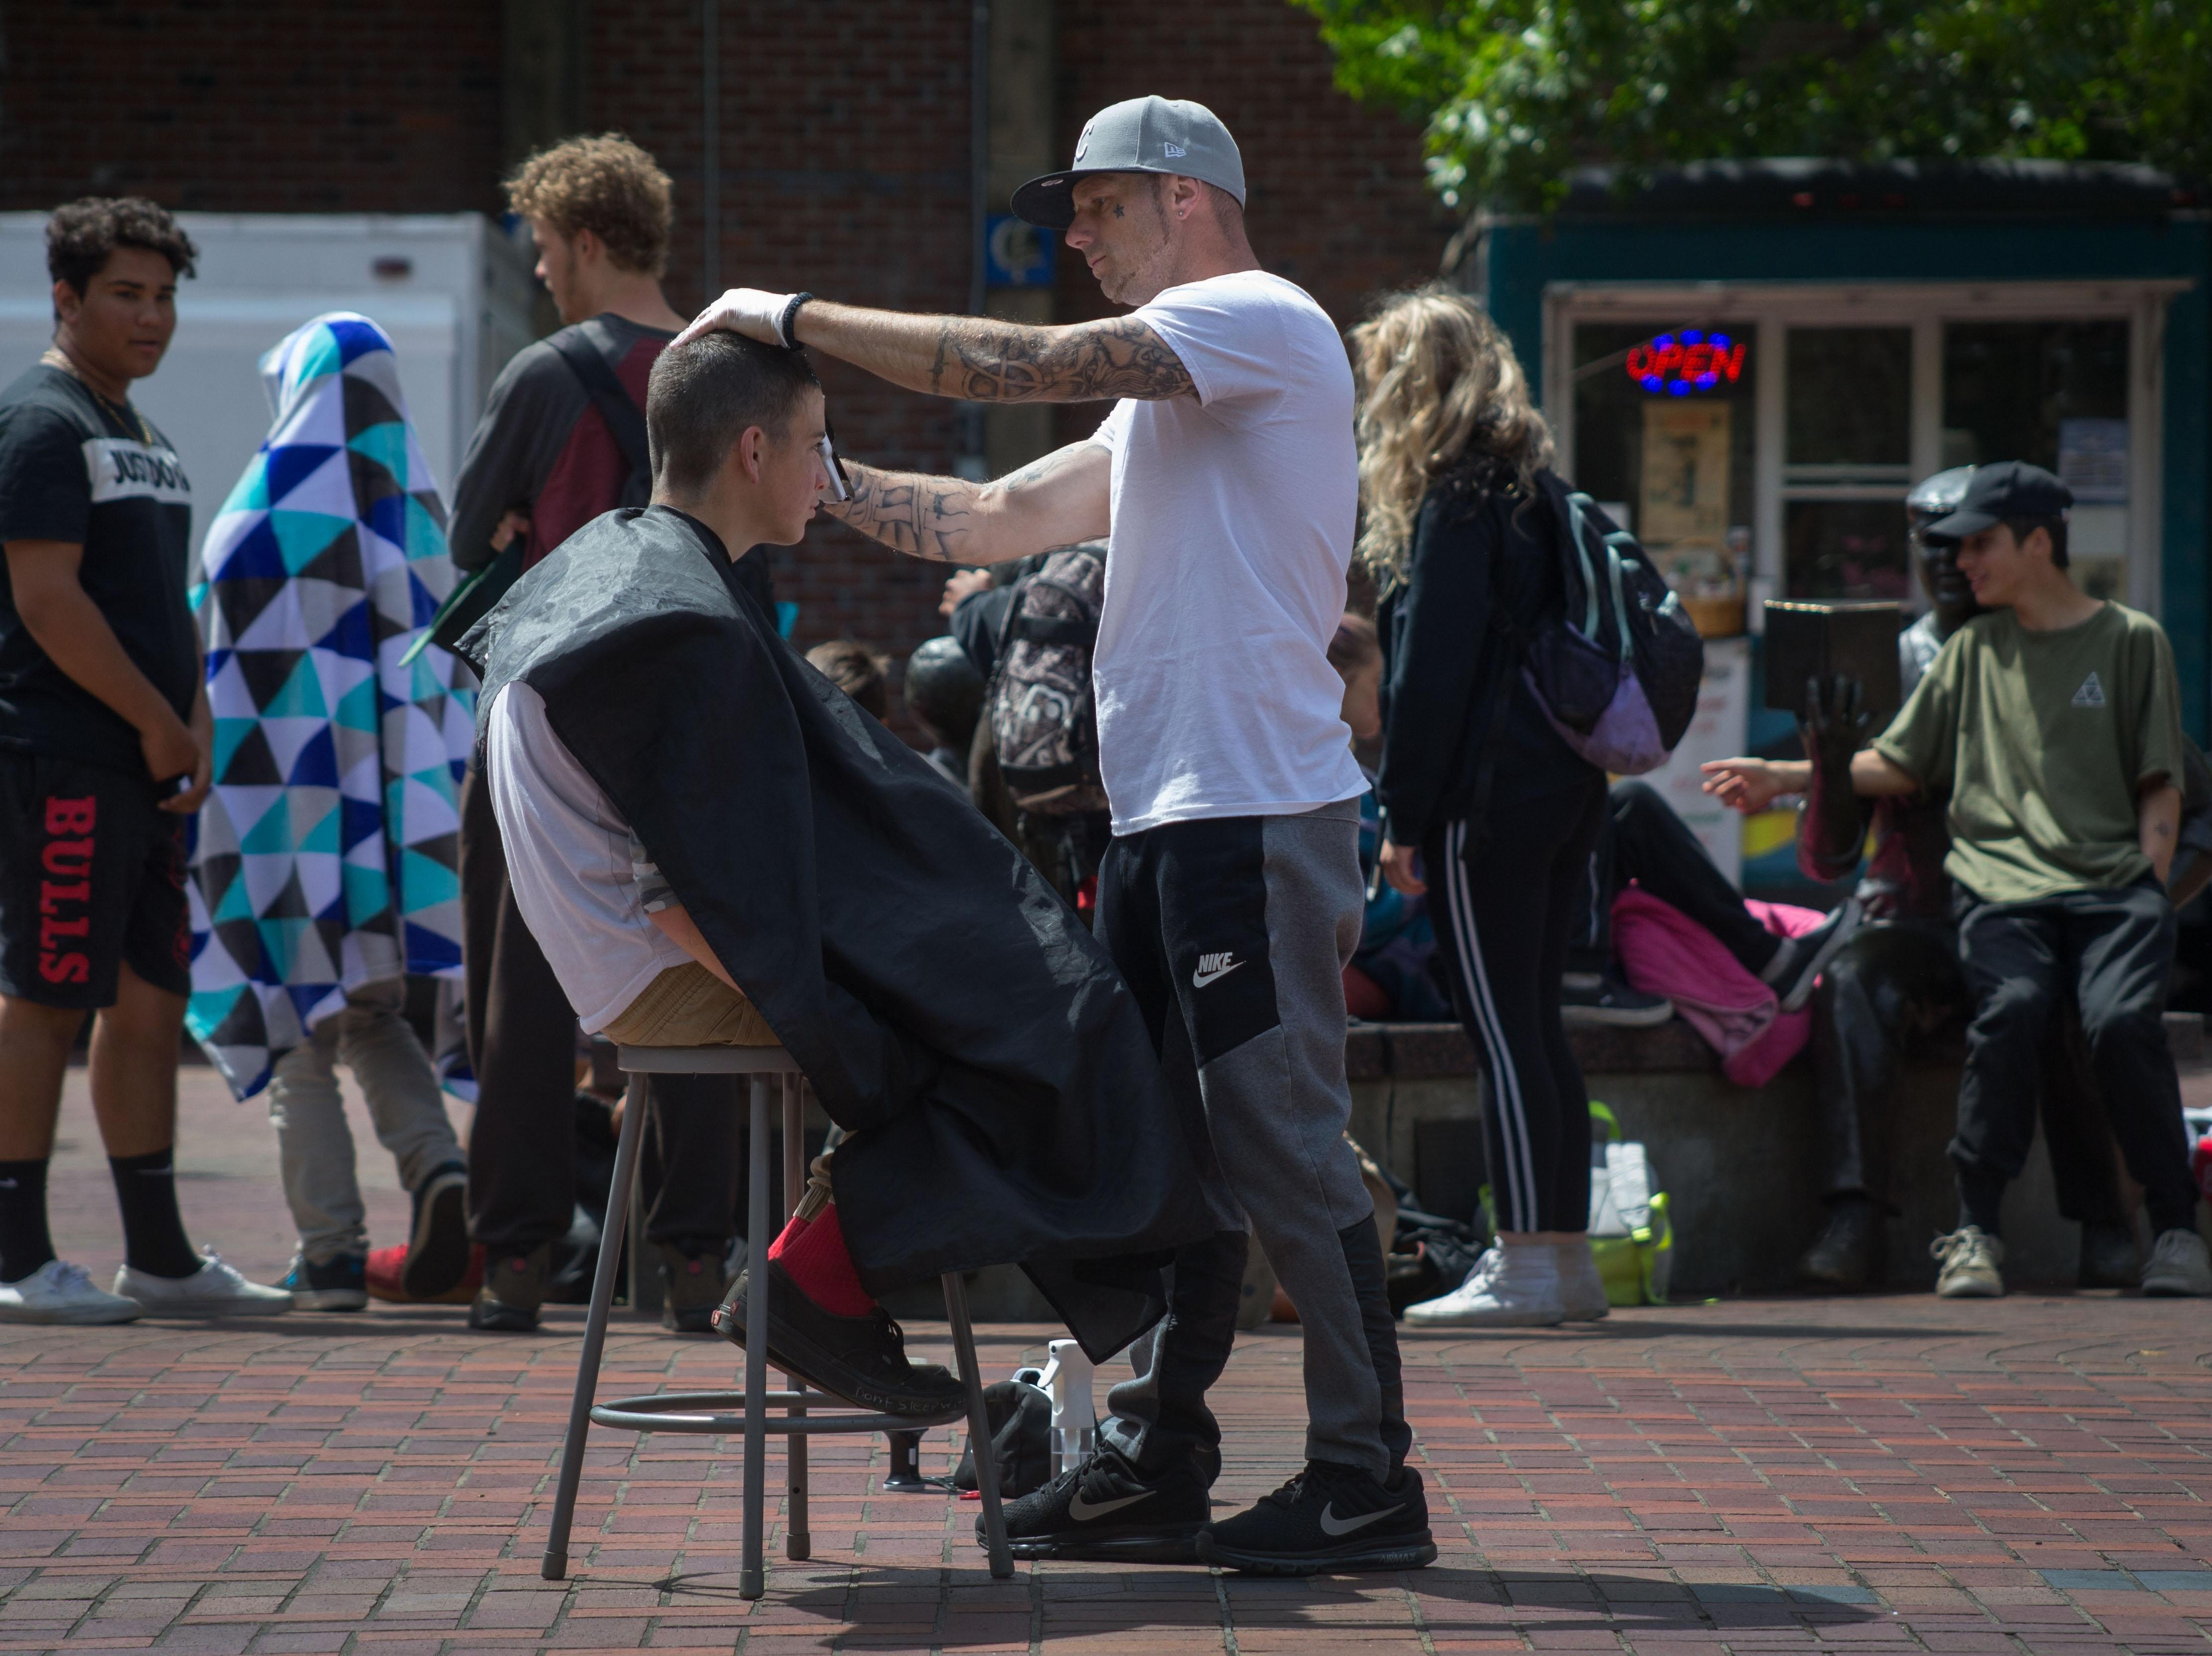 Eugene Man Helping Homeless People With Free Haircuts Washington Times